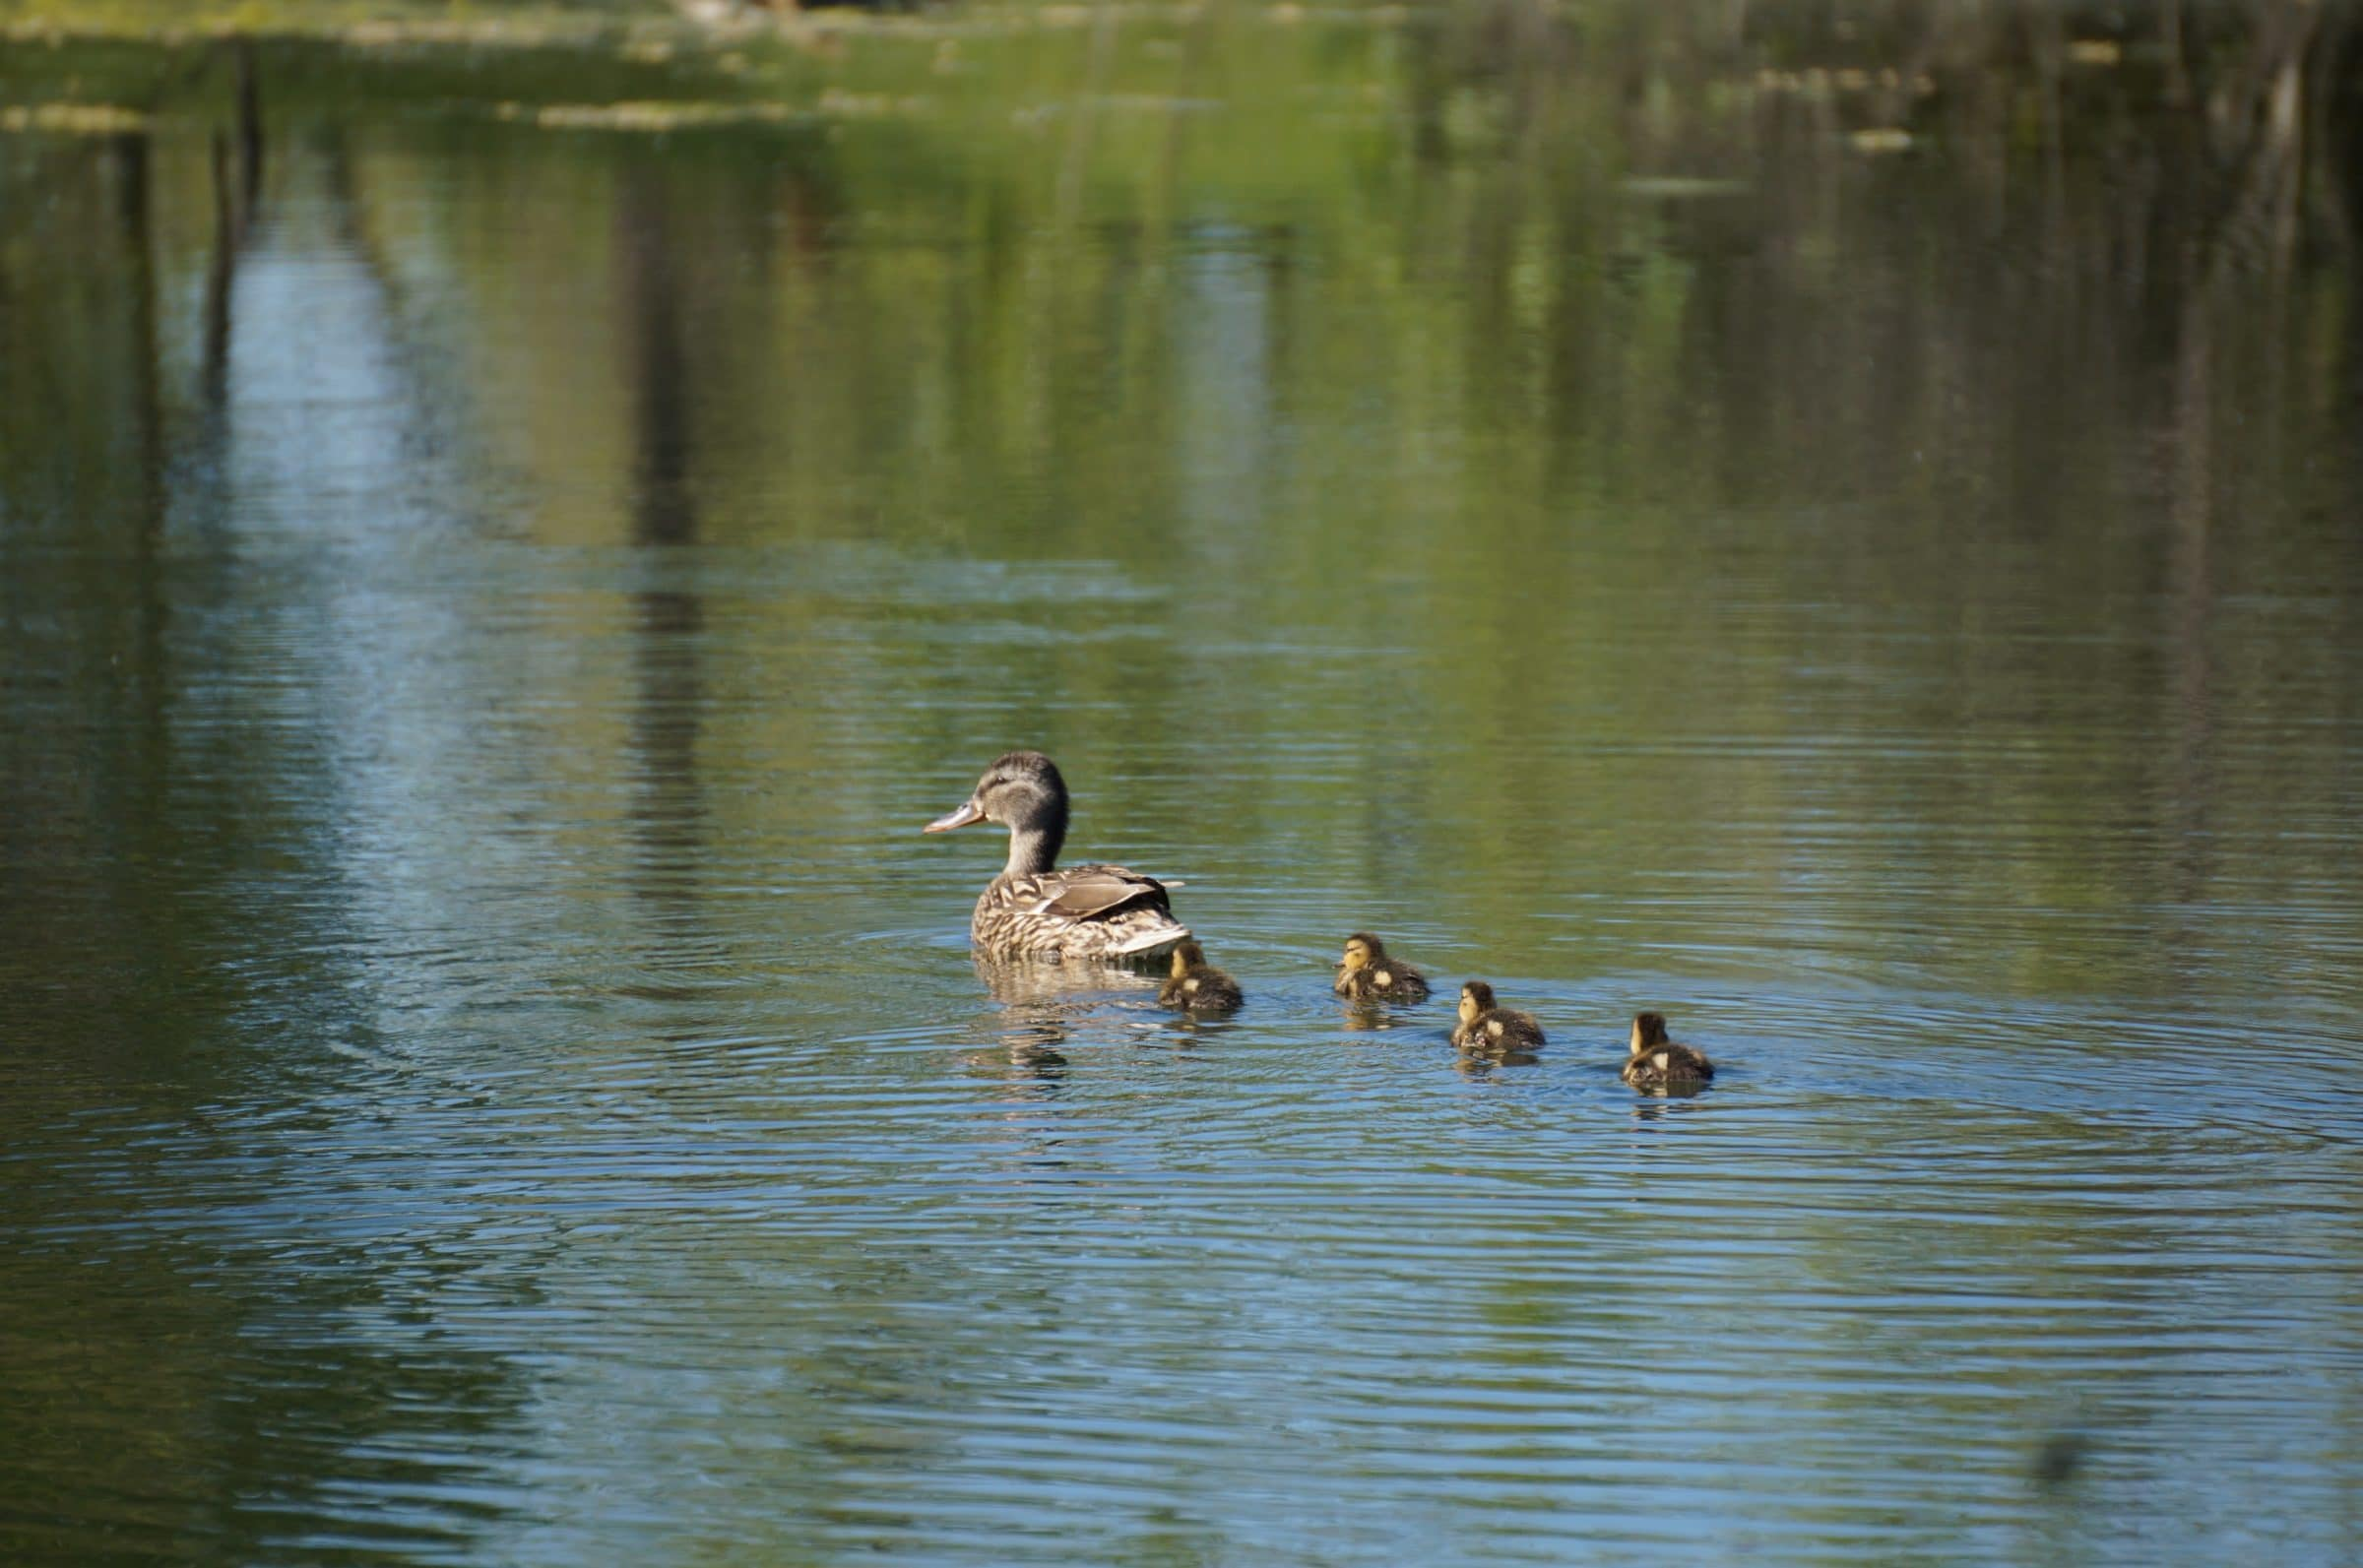 A duck and several ducklings swim in the water.